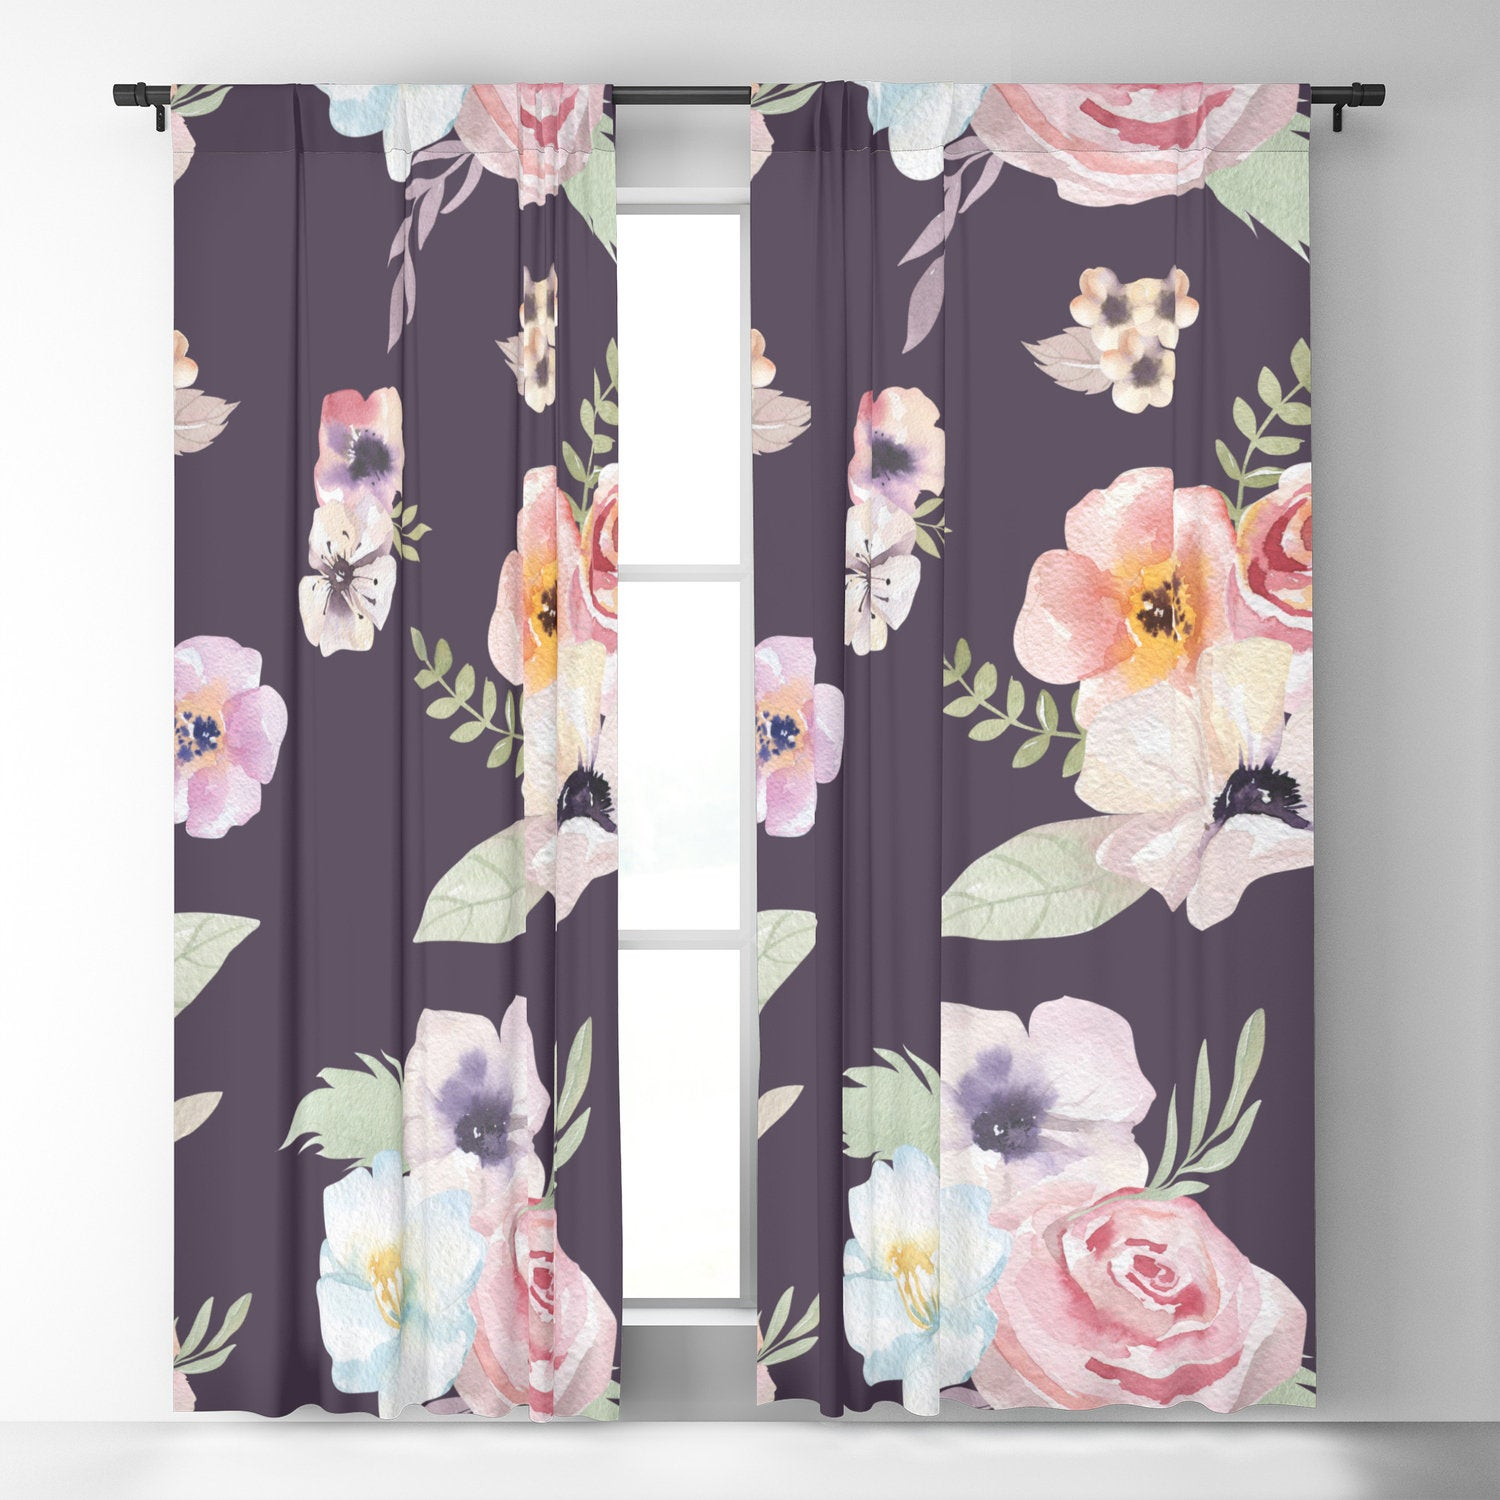 Window Curtains – Watercolor Floral I – Eggplant Pink – 50 X 84 Pertaining To Andorra Watercolor Floral Textured Sheer Single Curtain Panels (View 17 of 20)